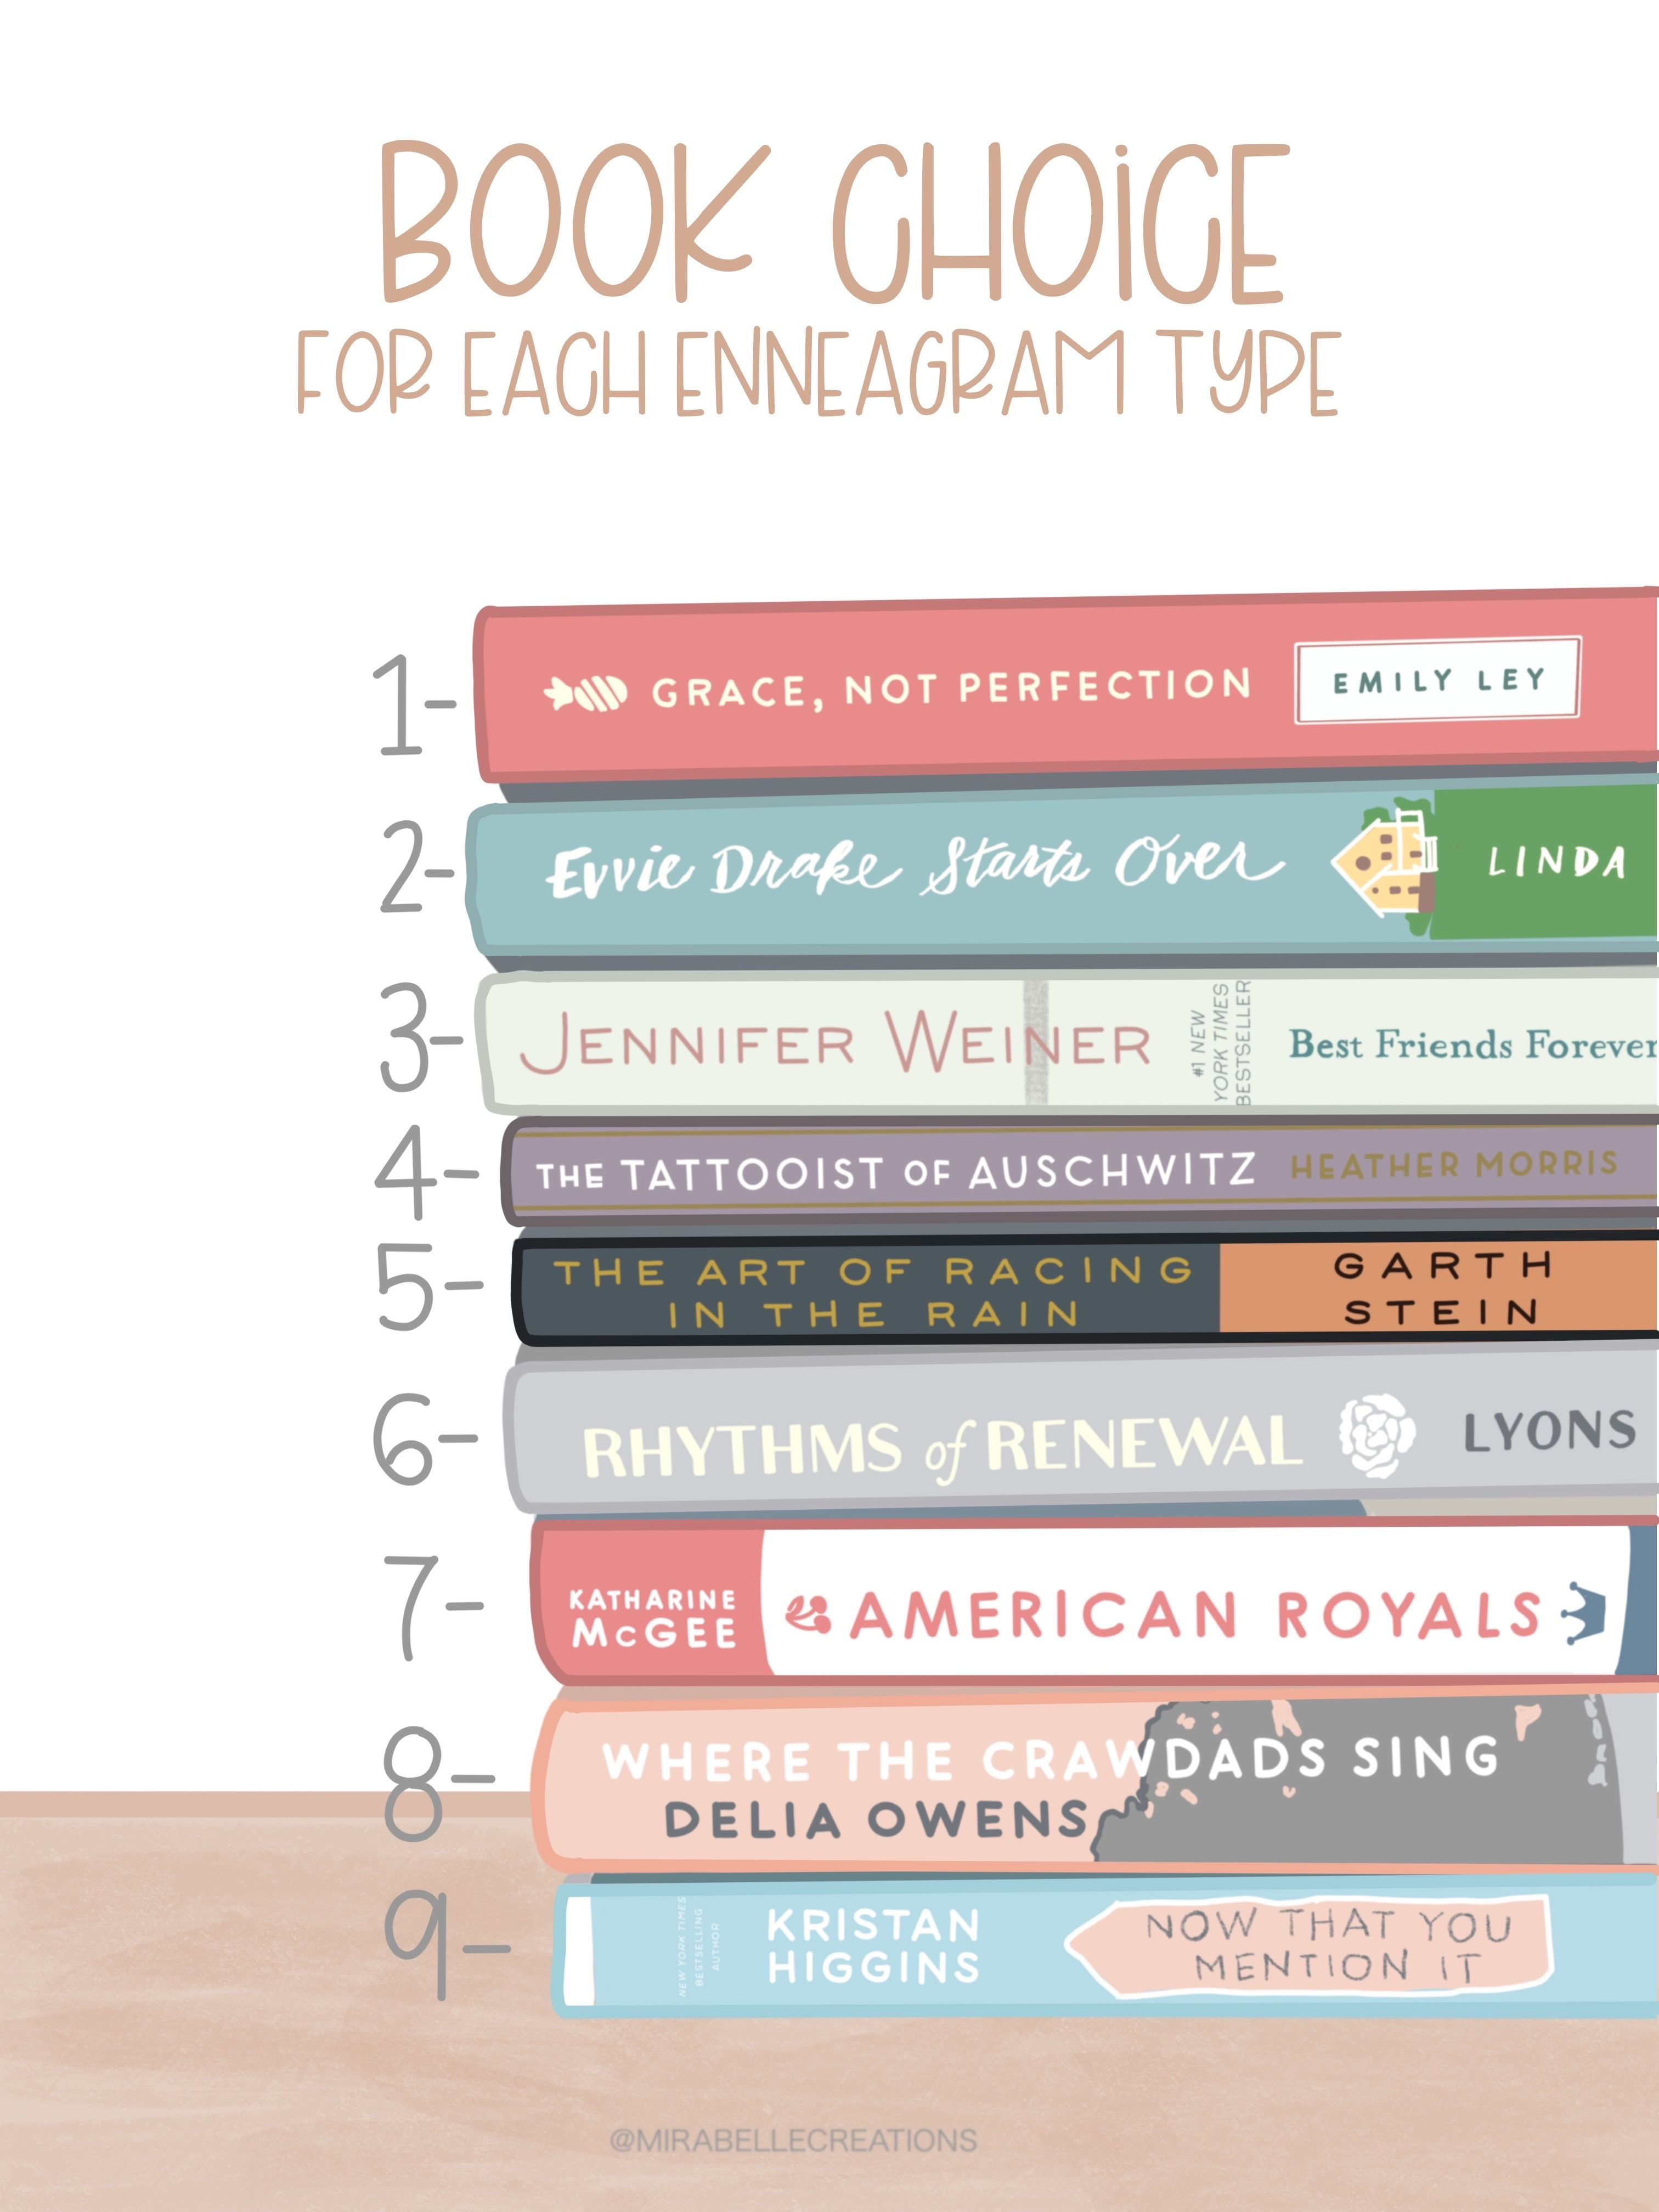 Book Recommendation List Based On Your Enneagram Type Mirabelle Creations Enneagram Type 6 Enneagram Enneagram Types